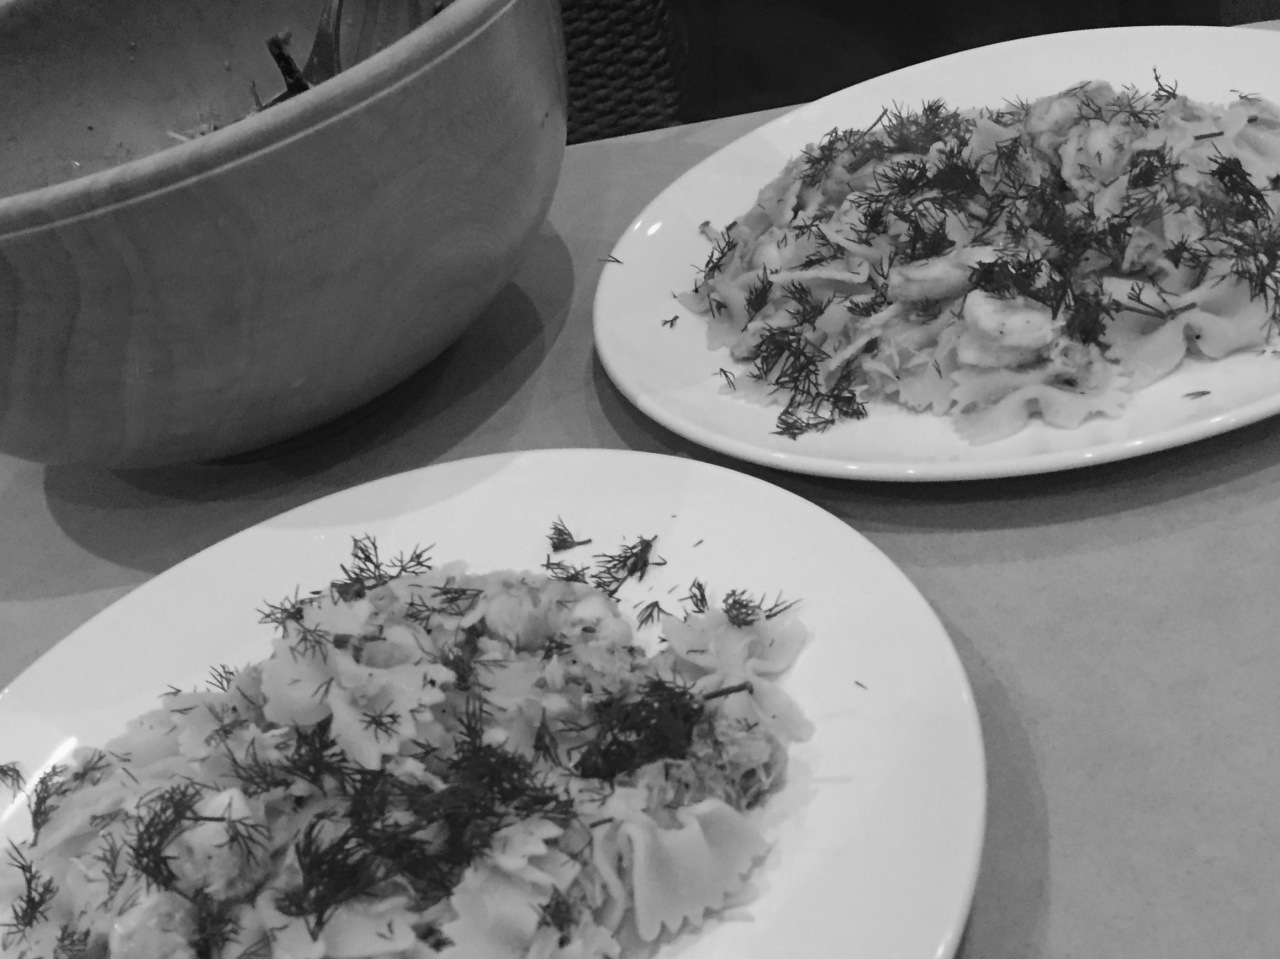 Butterfly Pasta with Spider Crab and Small Prawns